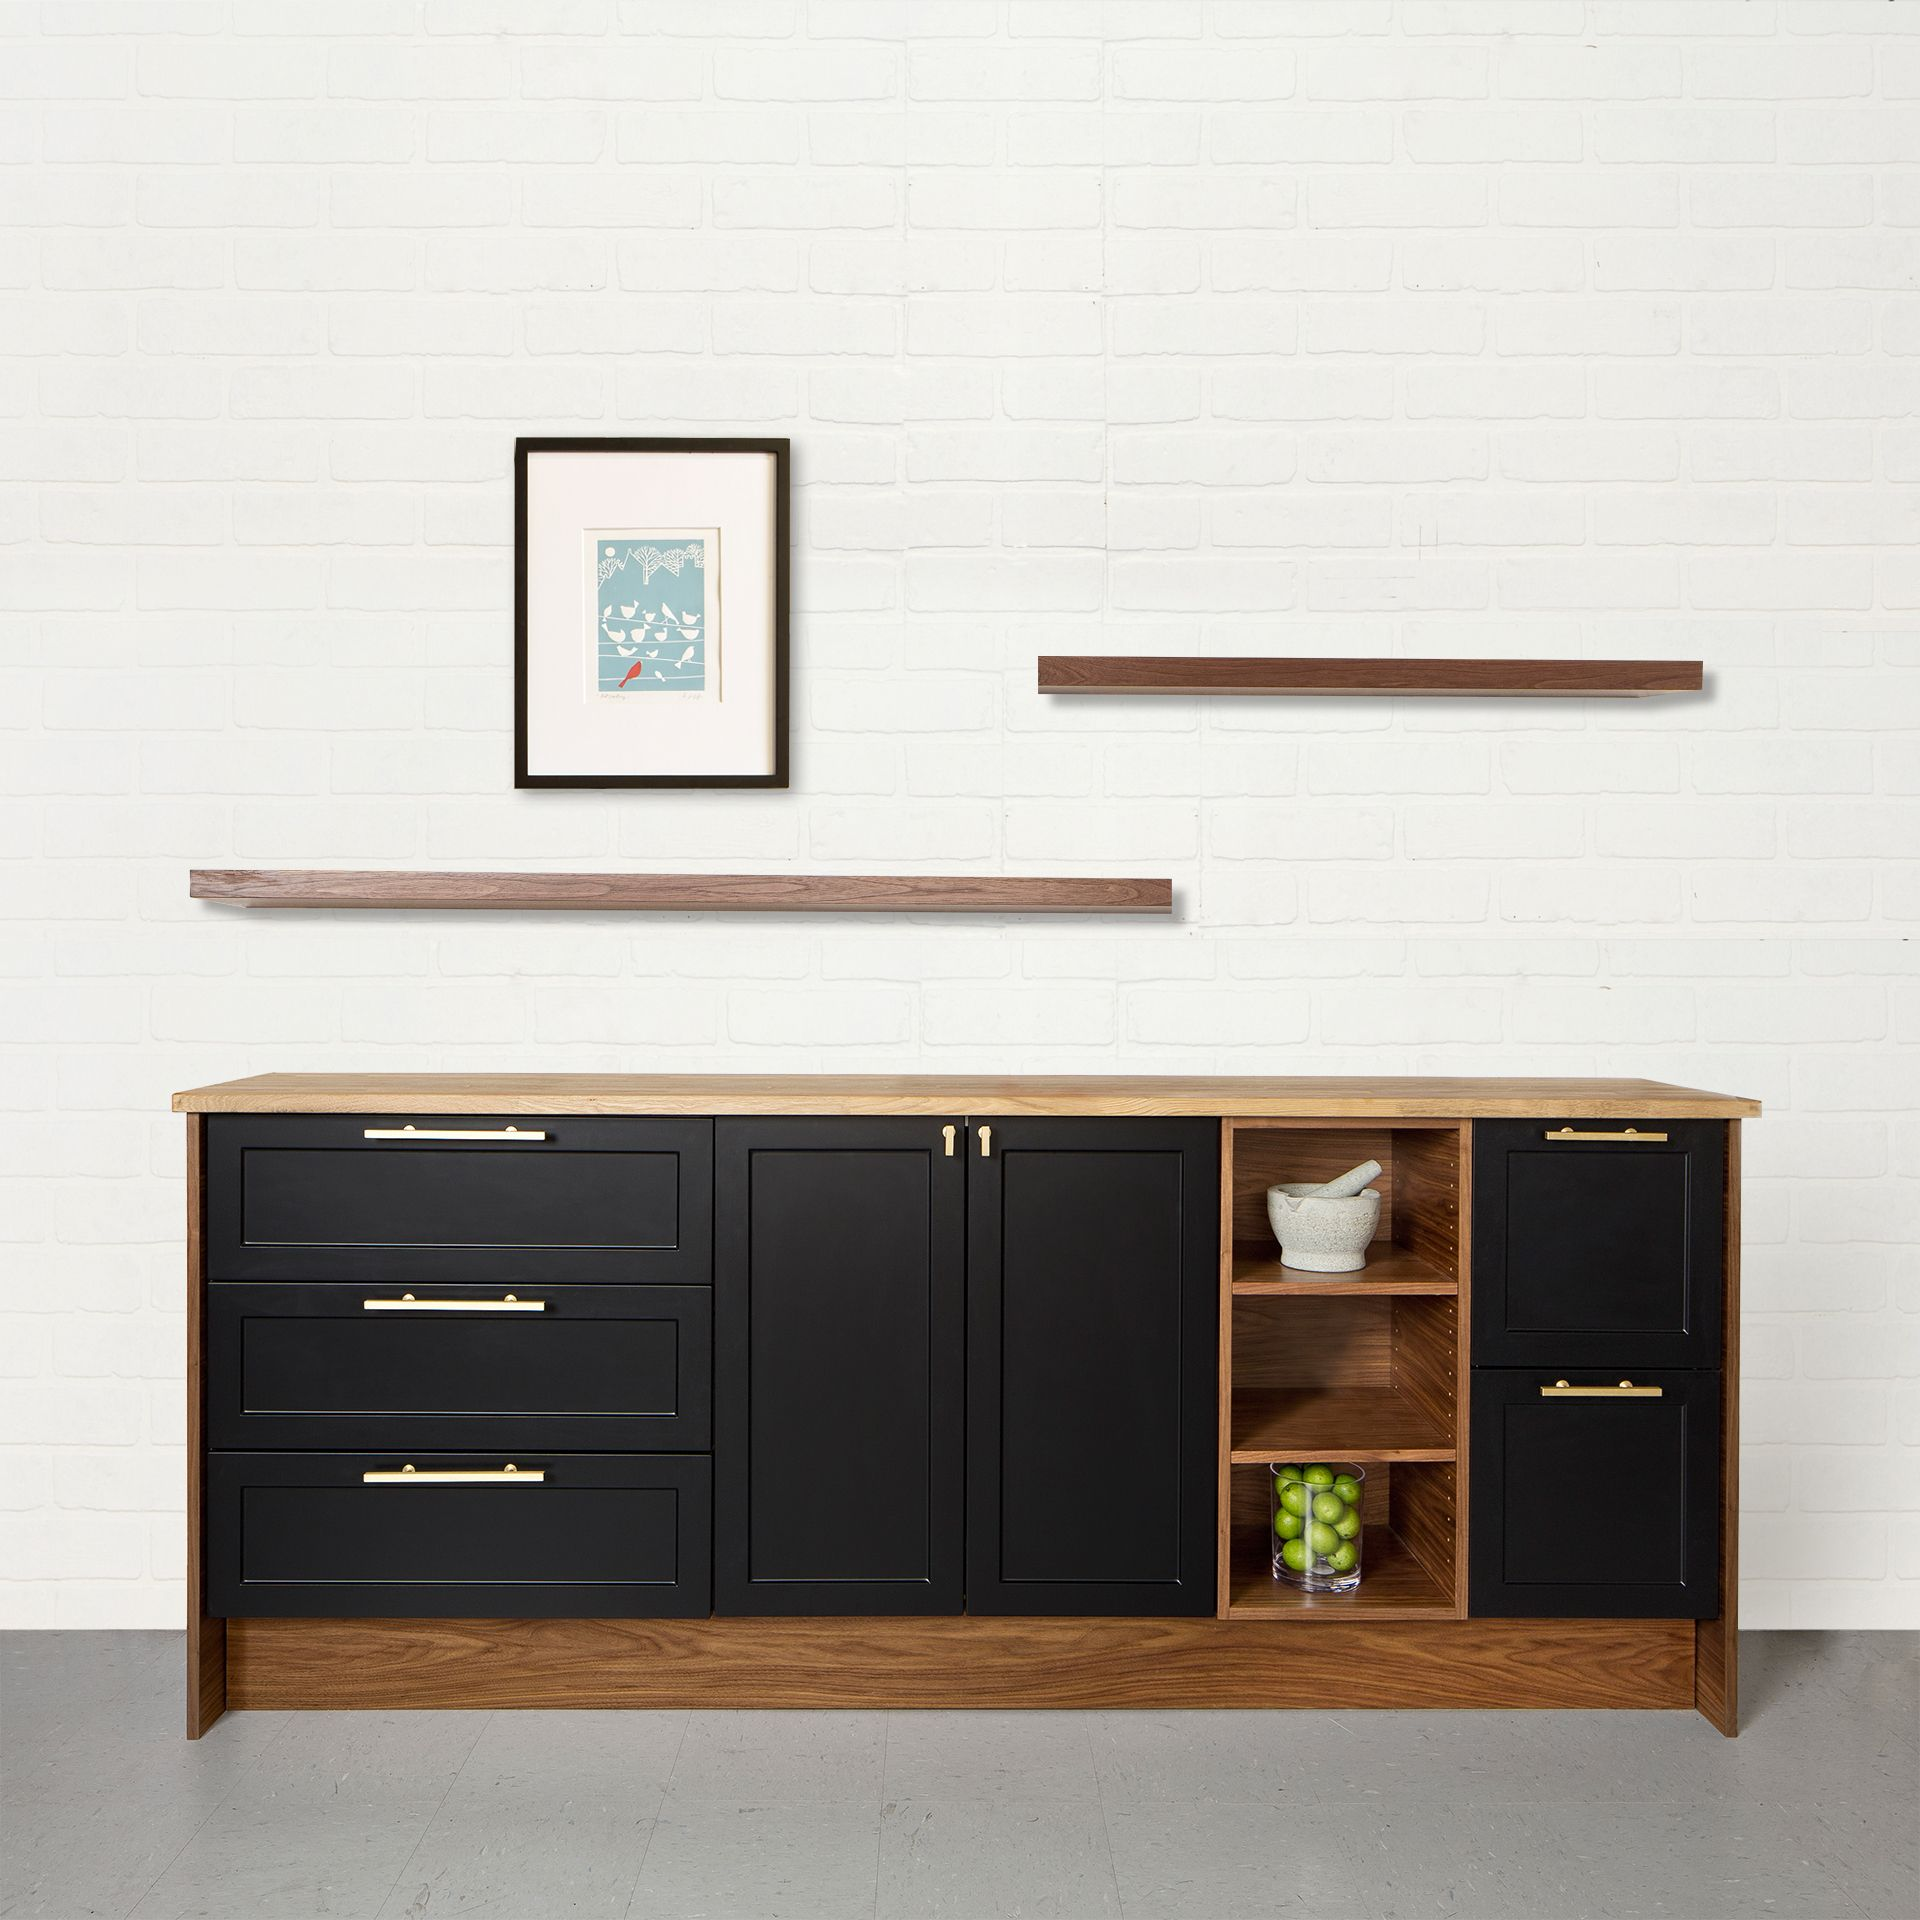 Ikea Walnut Shelves: Semihandmade Supermatte Black Shaker Ikea Kitchen